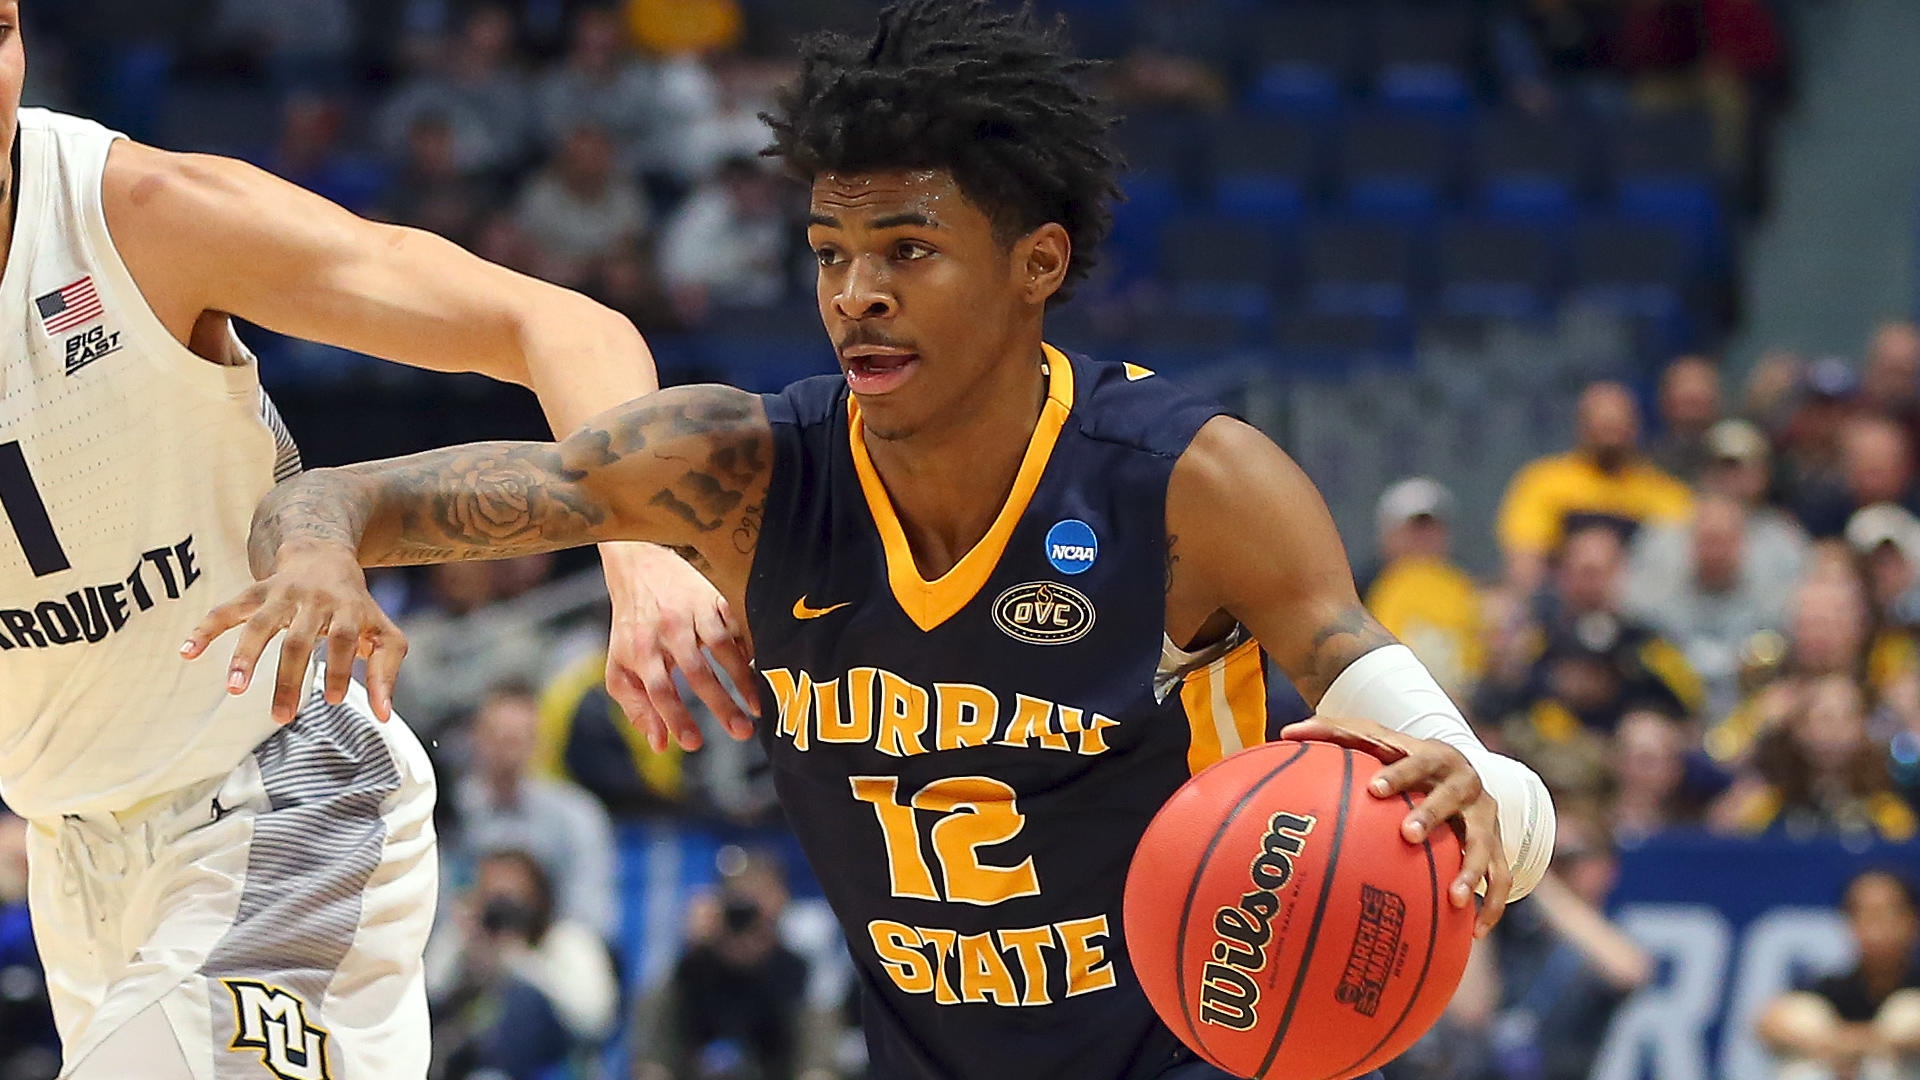 Ja Morant steals the first day of the 2019 NCAA Tournament as Murray State mutilates Marquette